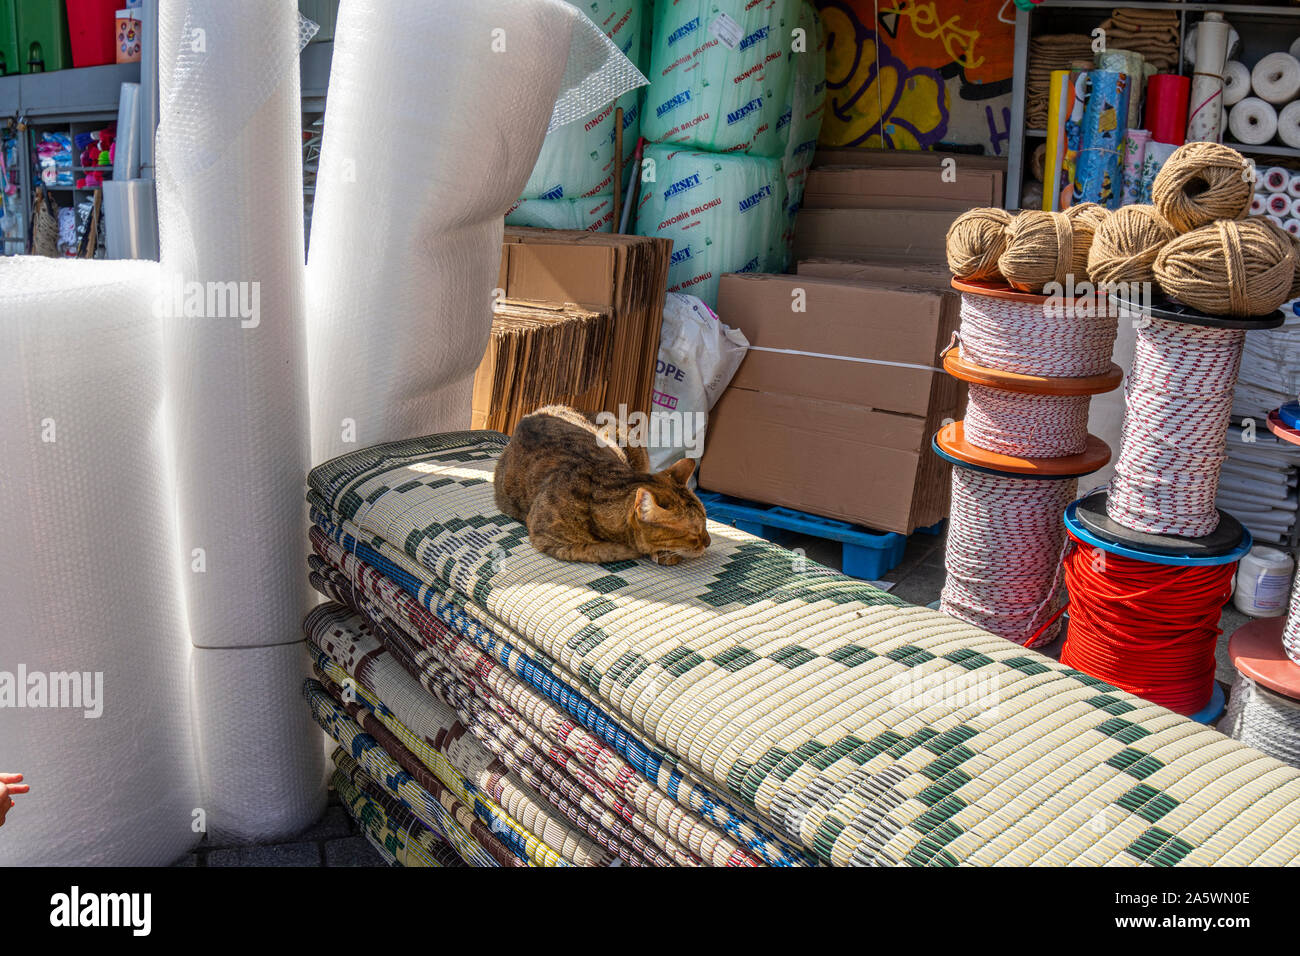 A stray tabby cat sleeps on fabric at an outdoor rug and fabric vendor in the Eminonu bazaar area of Sultanahment district. Stock Photo